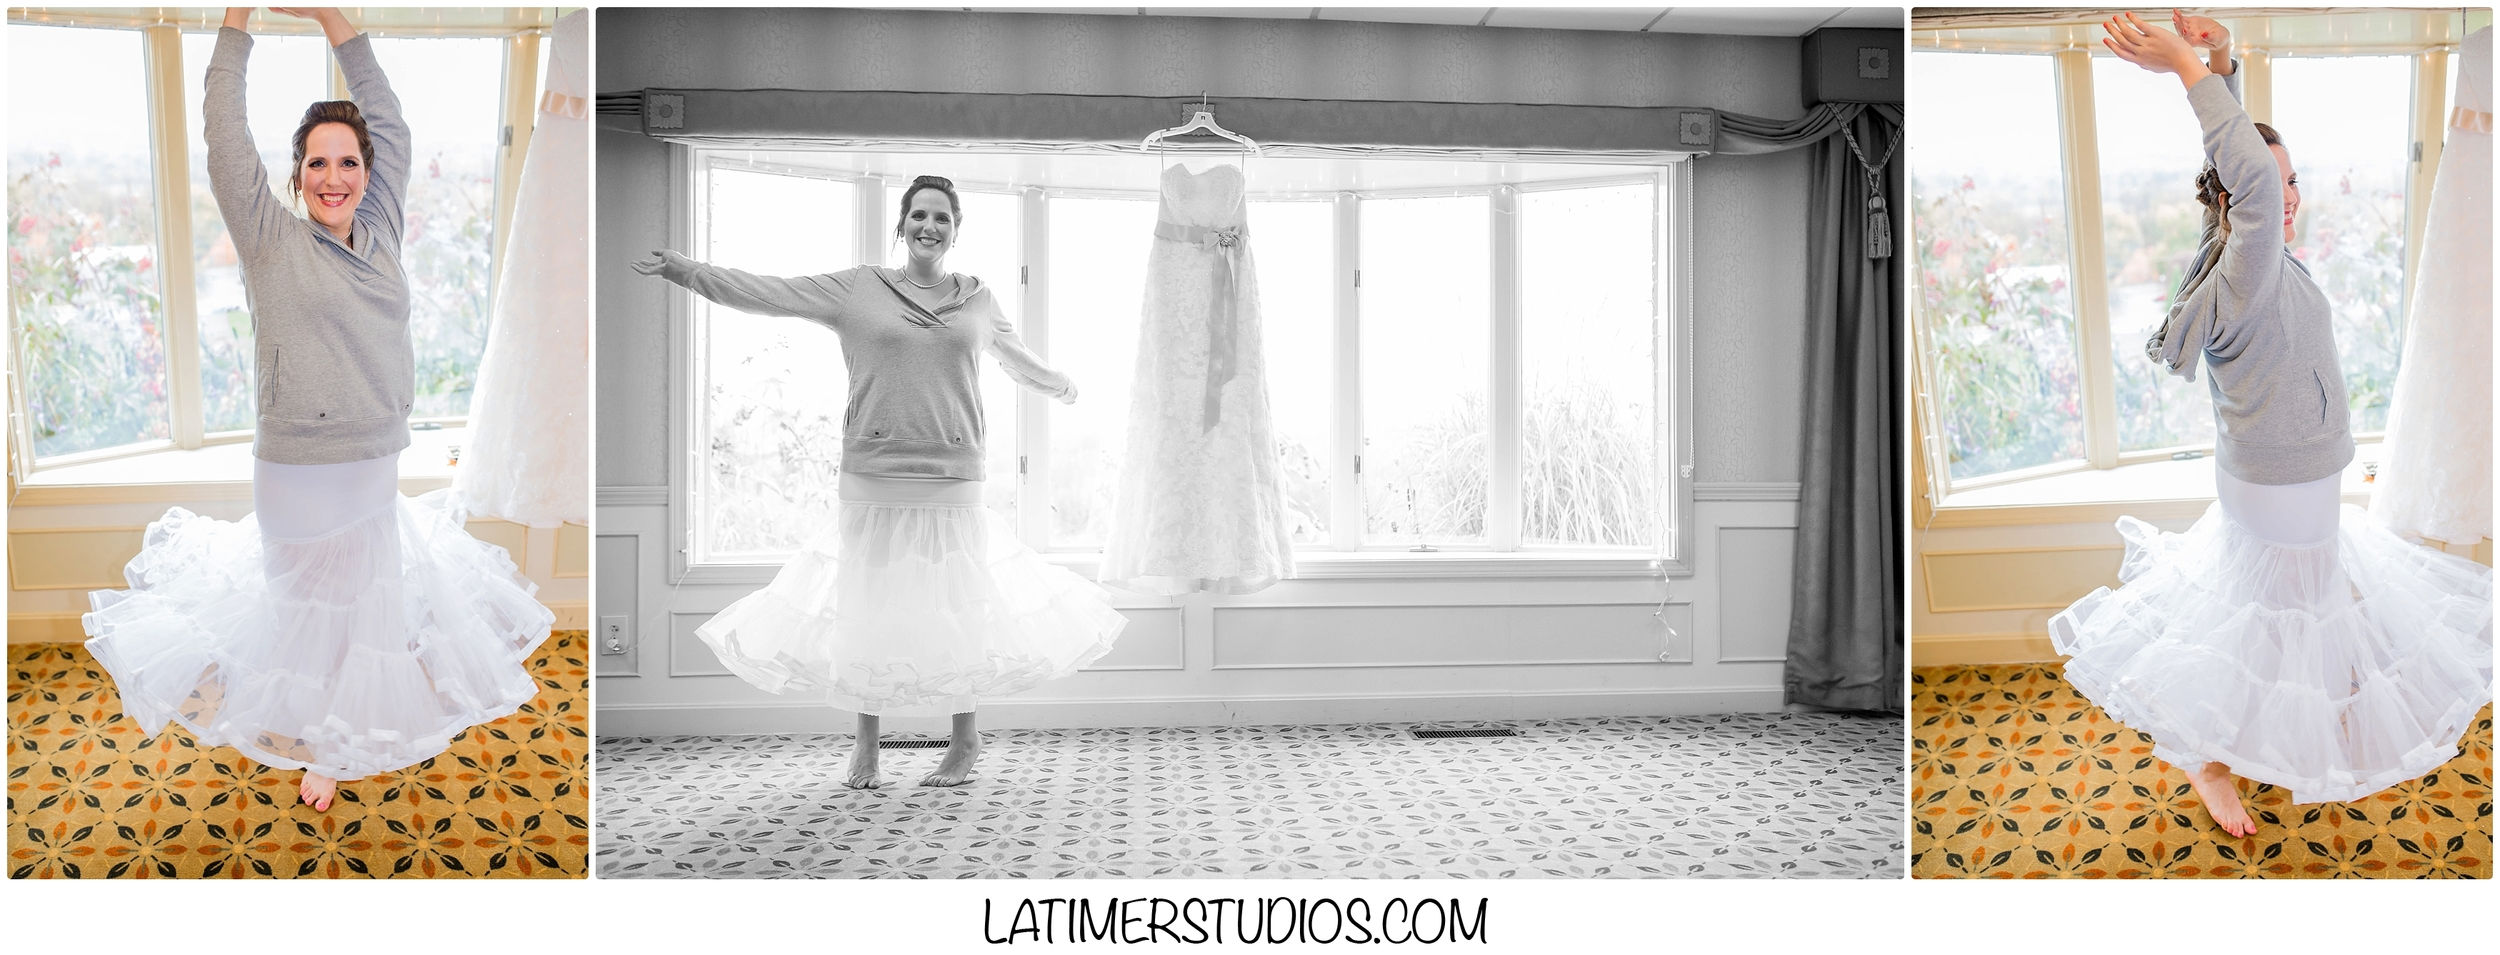 Latimer Studios Photography capturing wedding dress excitement at Red Jacket Mountain View in North Conway, NH